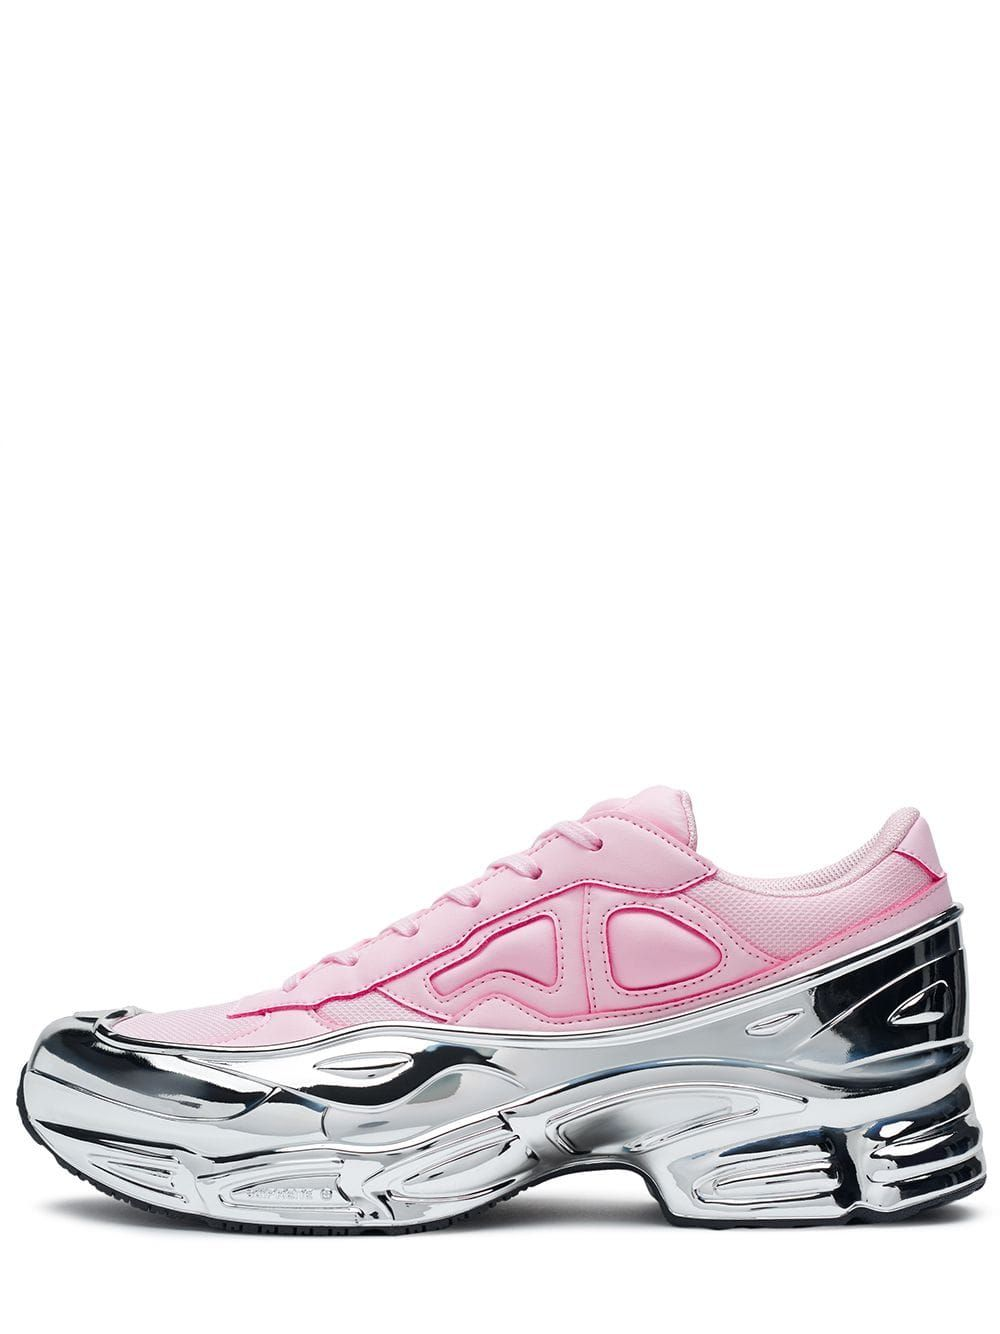 ADIDAS ORIGINALS ADIDAS PINK AND SILVER RS OZWEEGO SNEAKERS